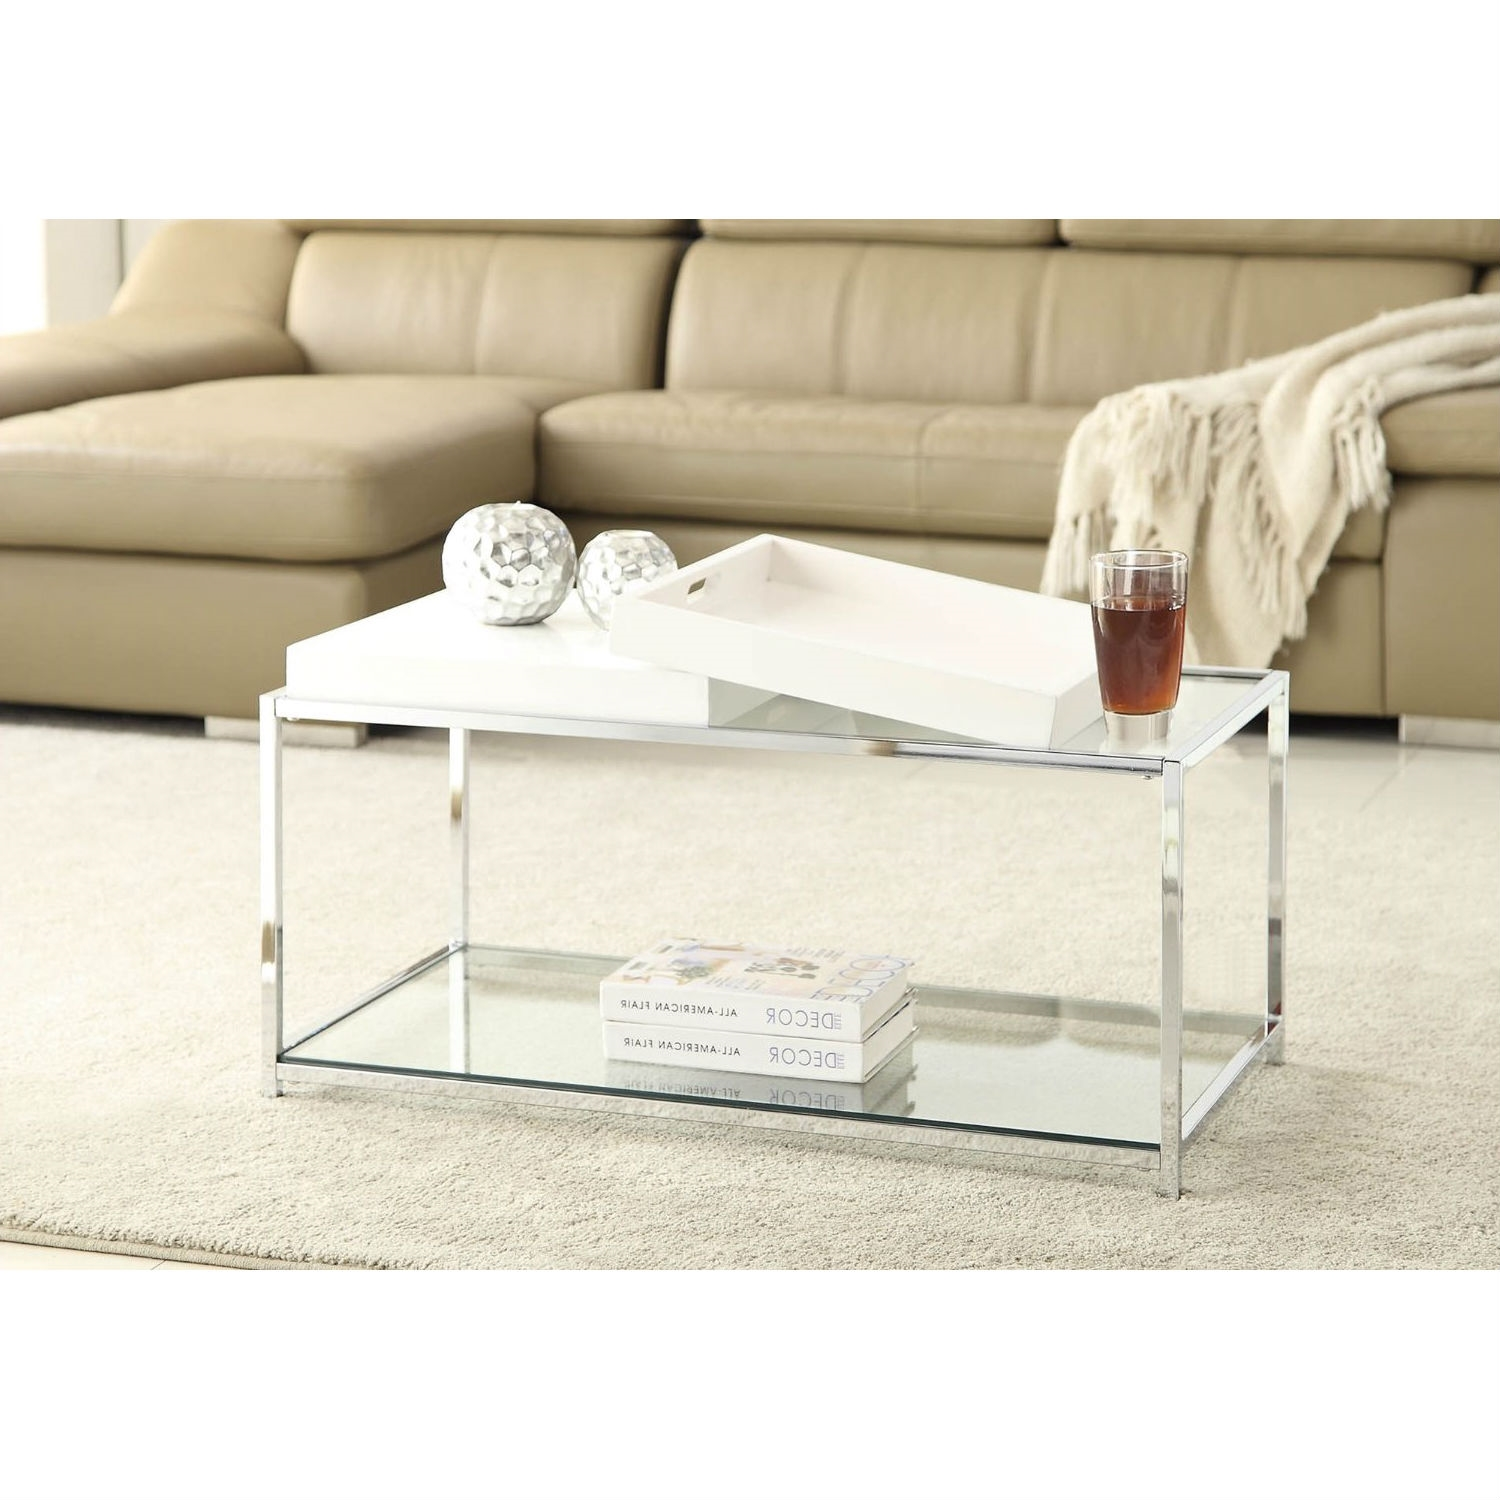 Modern chrome metal coffee table with 2 white removable trays retail price 19900 geotapseo Image collections